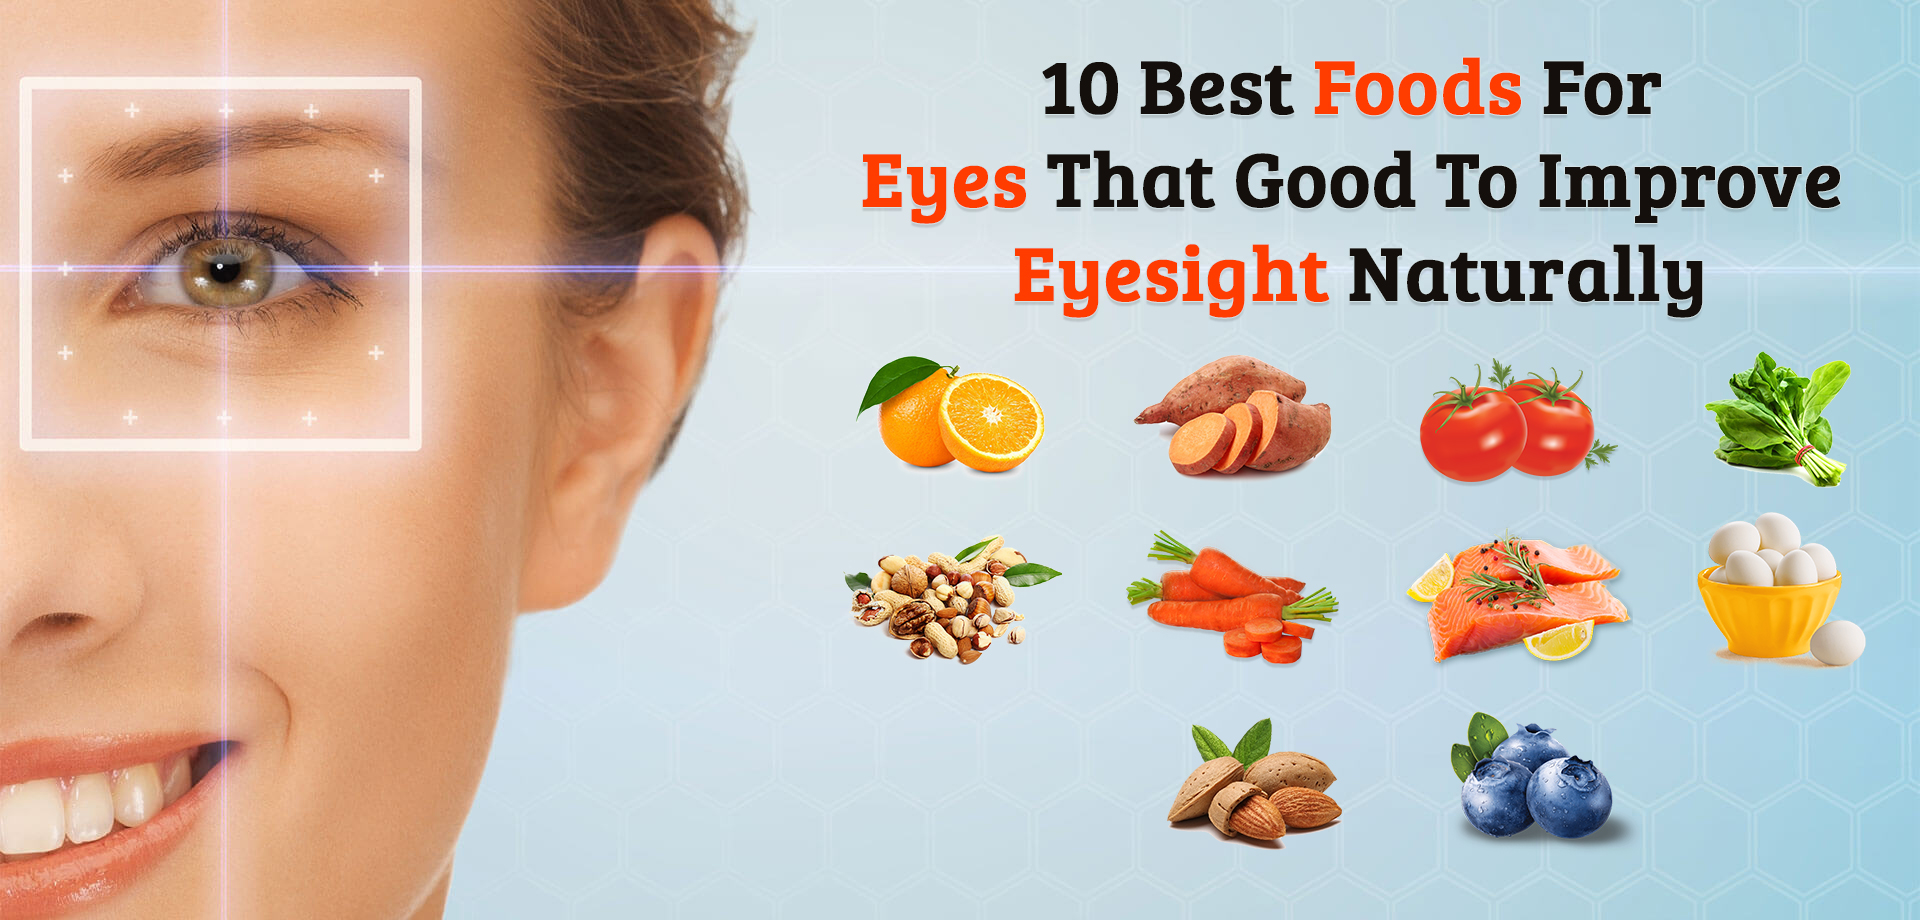 11 Best Foods for Eyes That Good to Improvement Eye Health Naturally